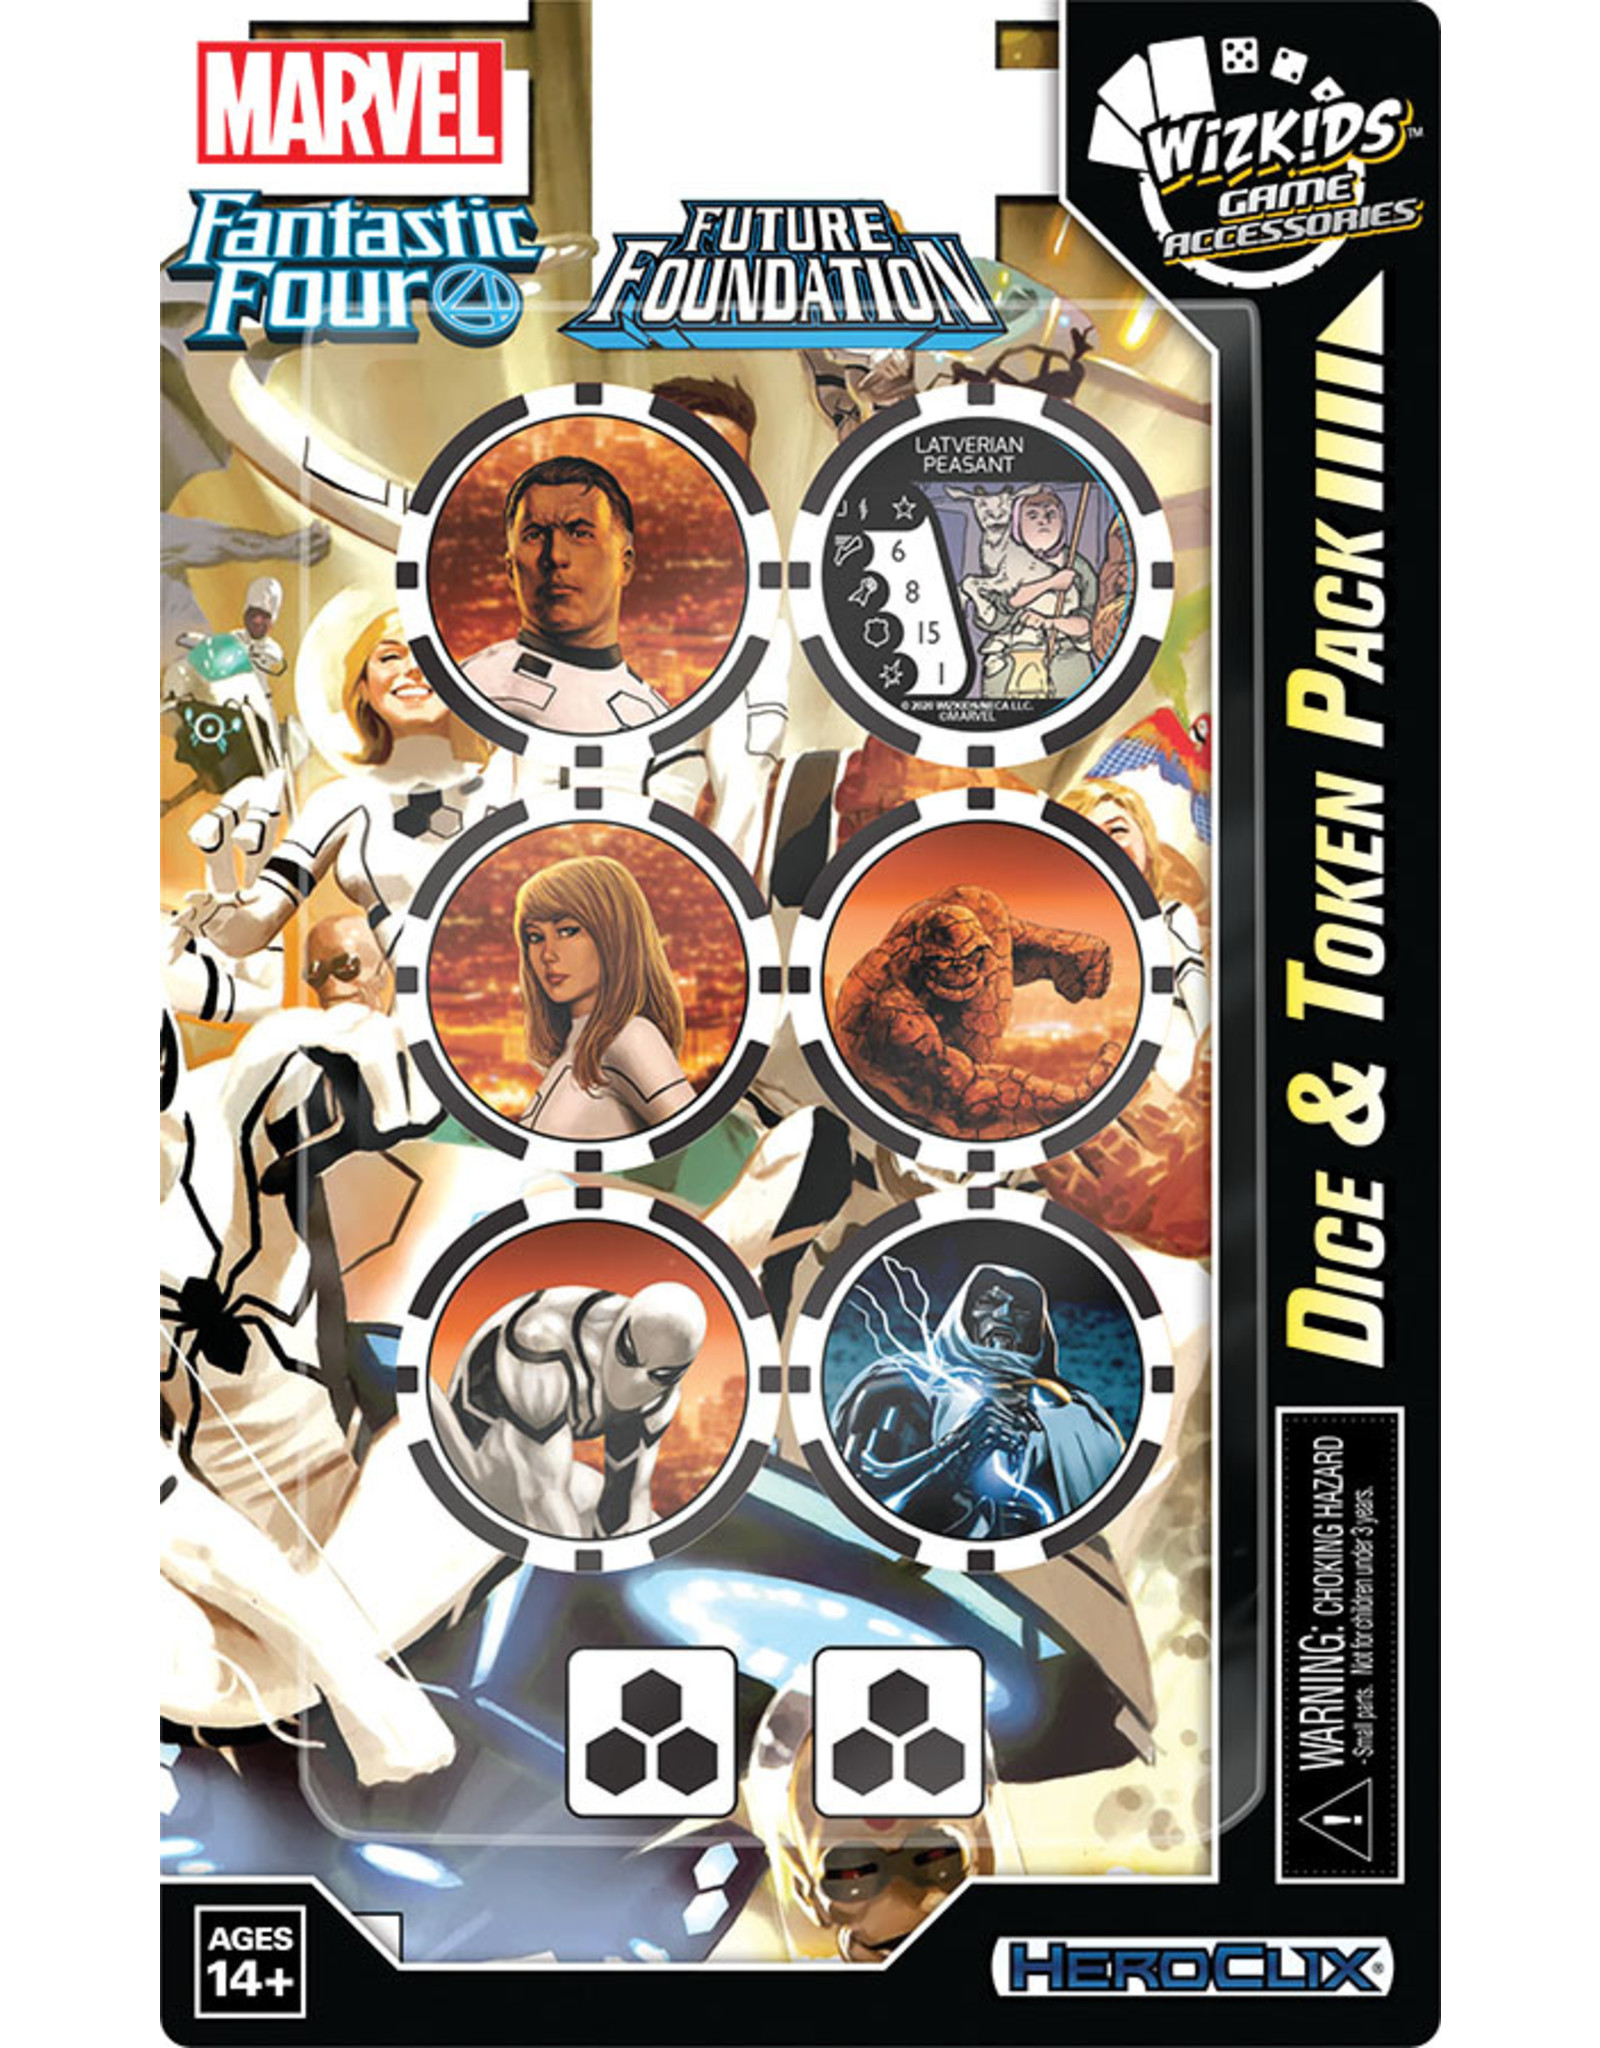 WizKids Marvel HeroClix: Fantastic Four Future Foundation Dice and Token Pack